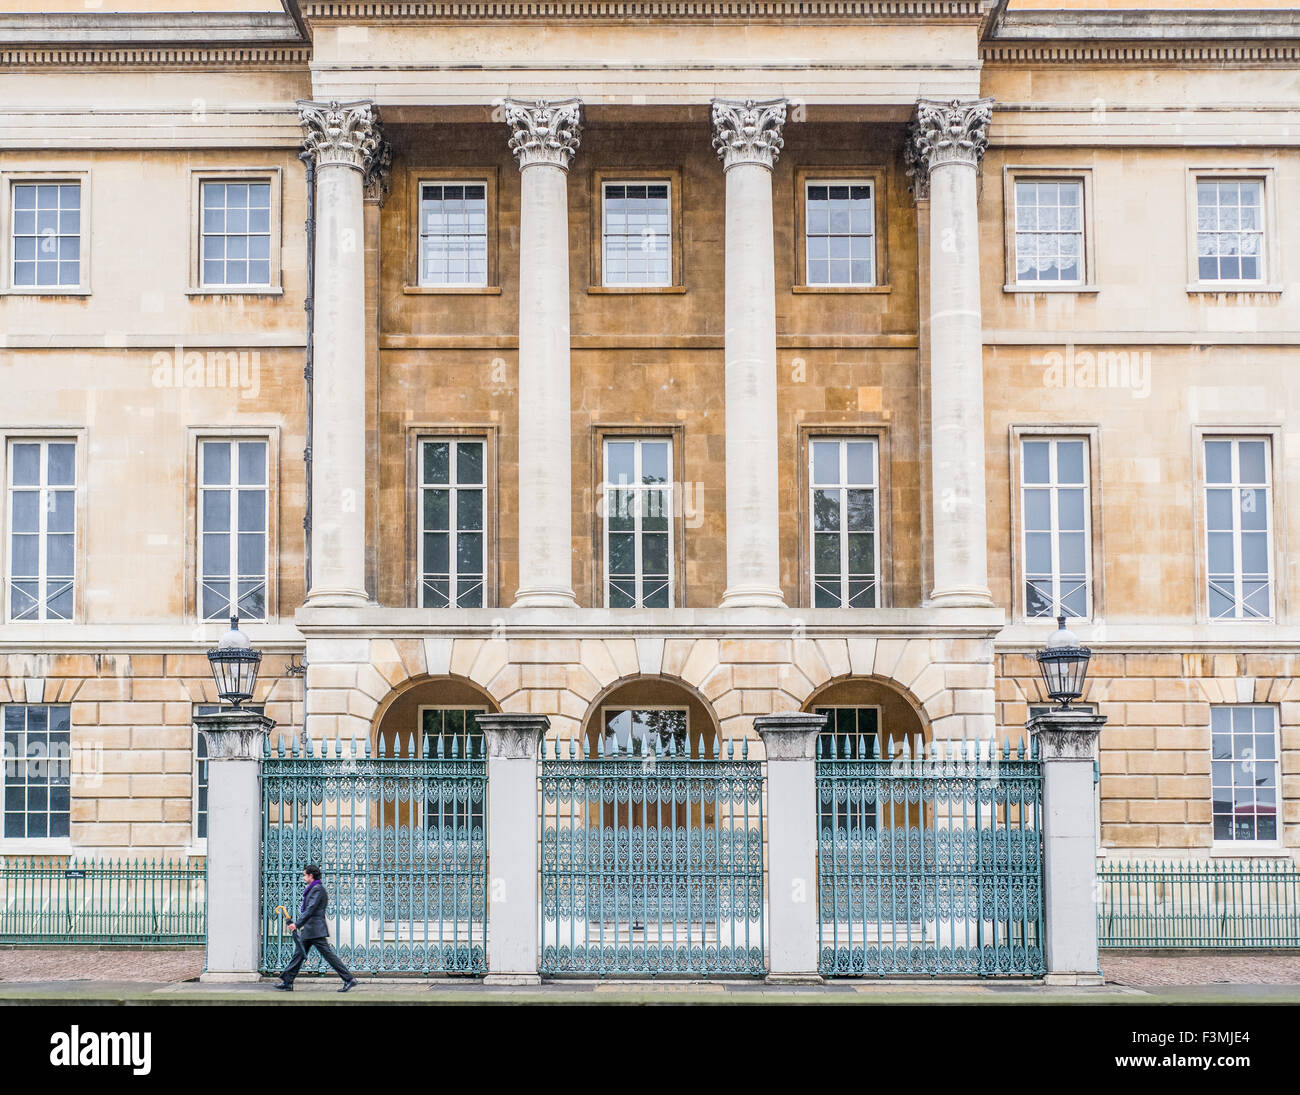 Apsley House, London, formerly the home of the Duke of Wellington (Arthur Wellesley, 1769-1852), the victor at Waterloo. - Stock Image